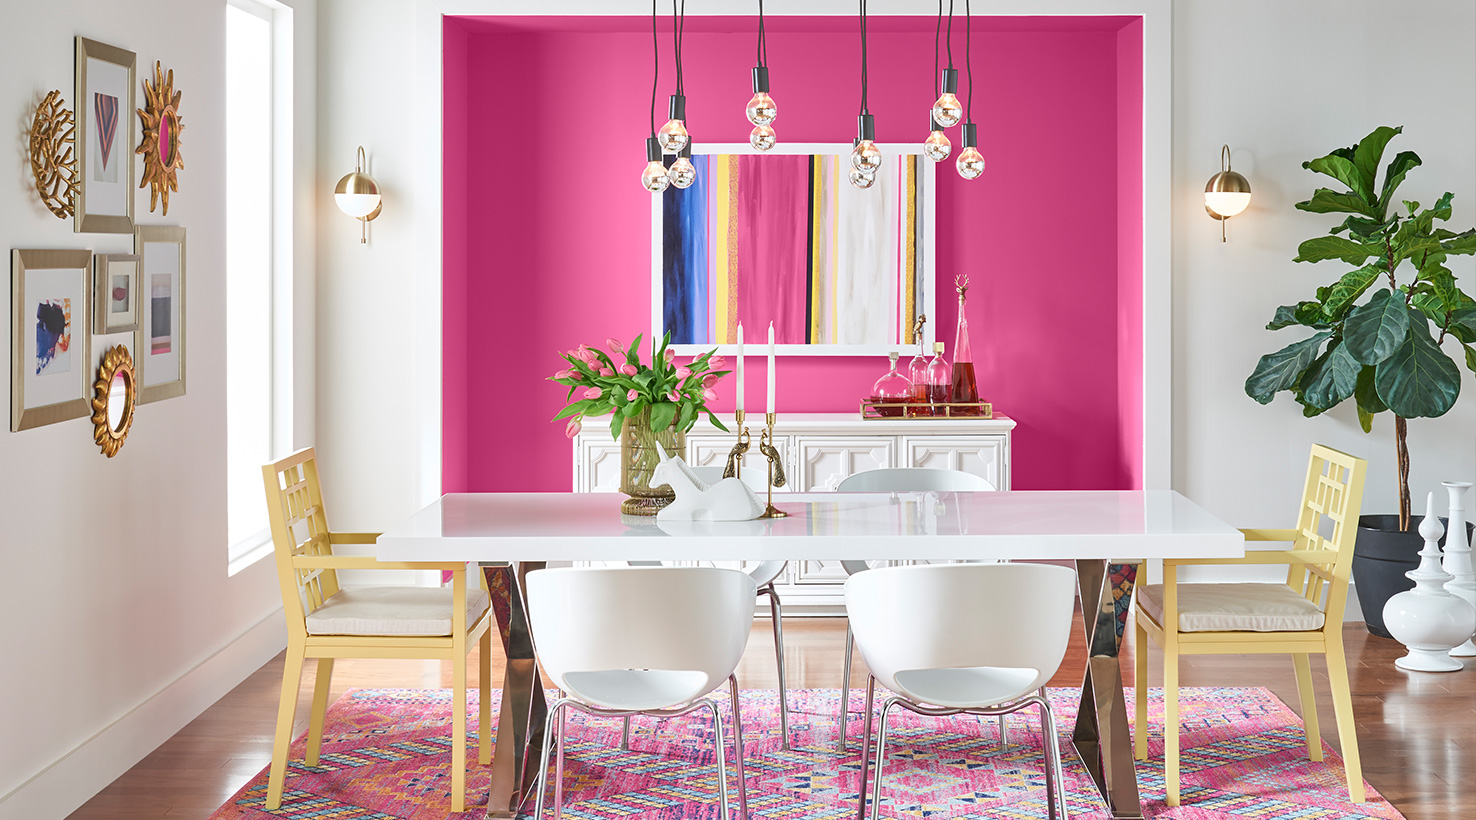 dining room paint color ideas sherwin williams | Dining Room Paint Color Ideas | Inspiration Gallery ...